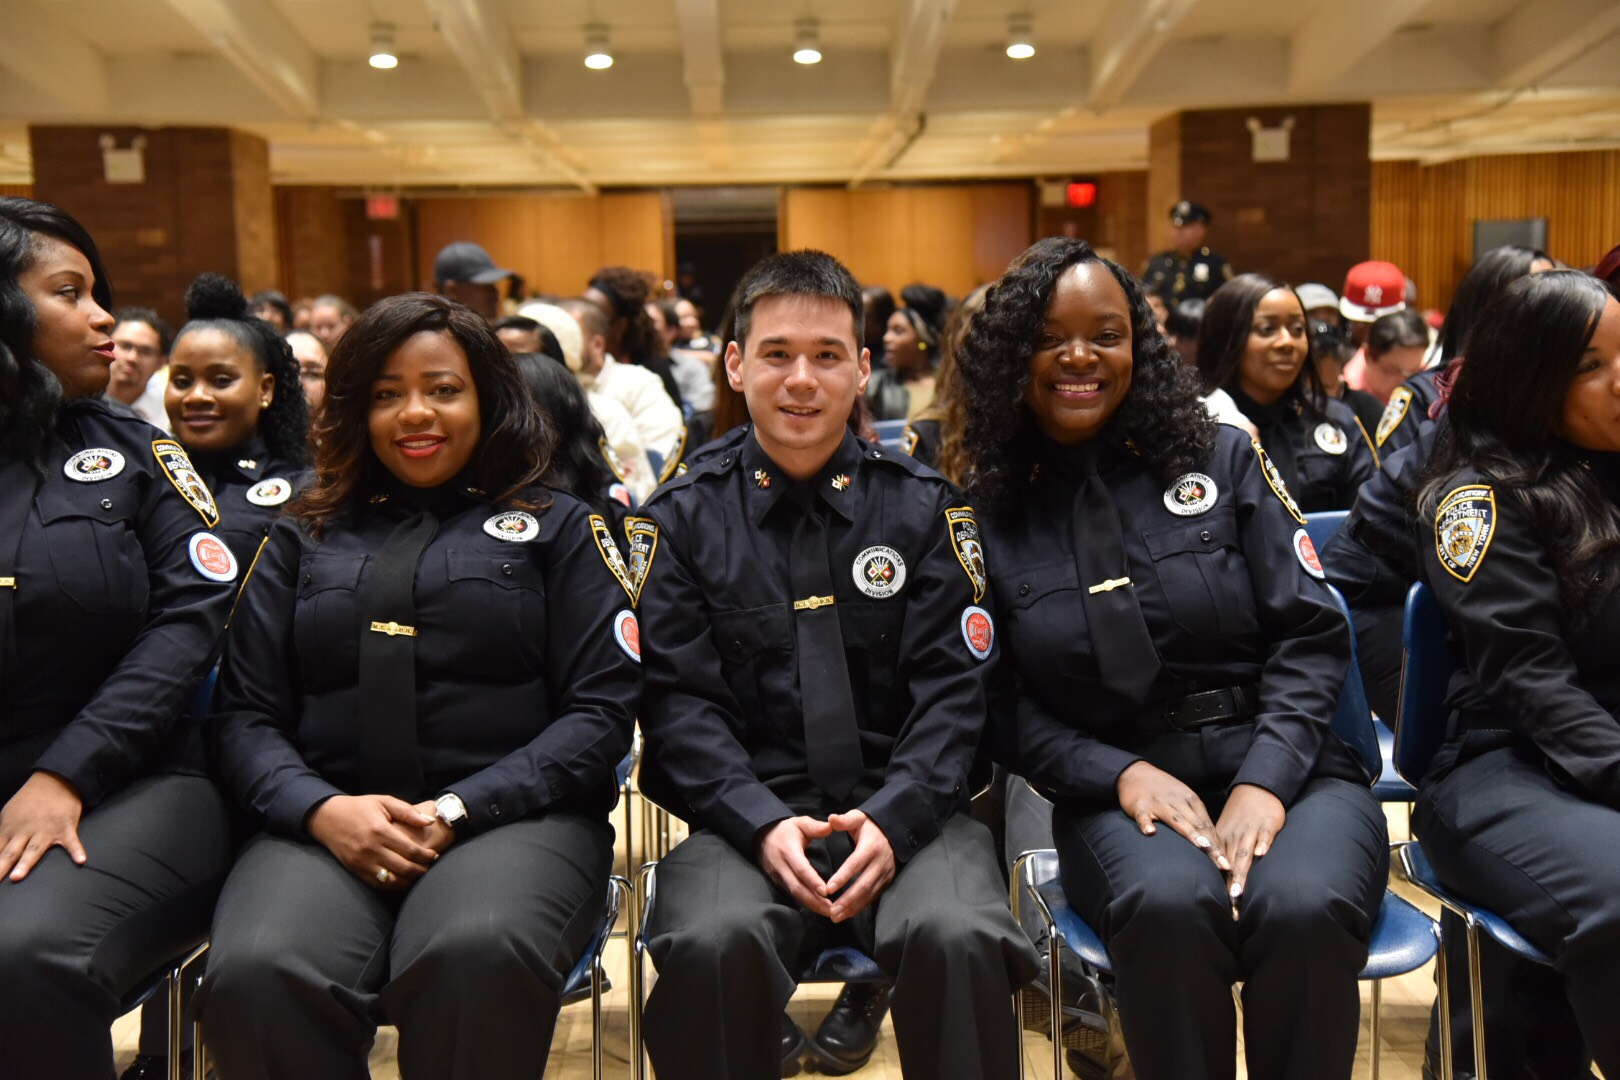 Police Communications Technicians Graduation Nypd News